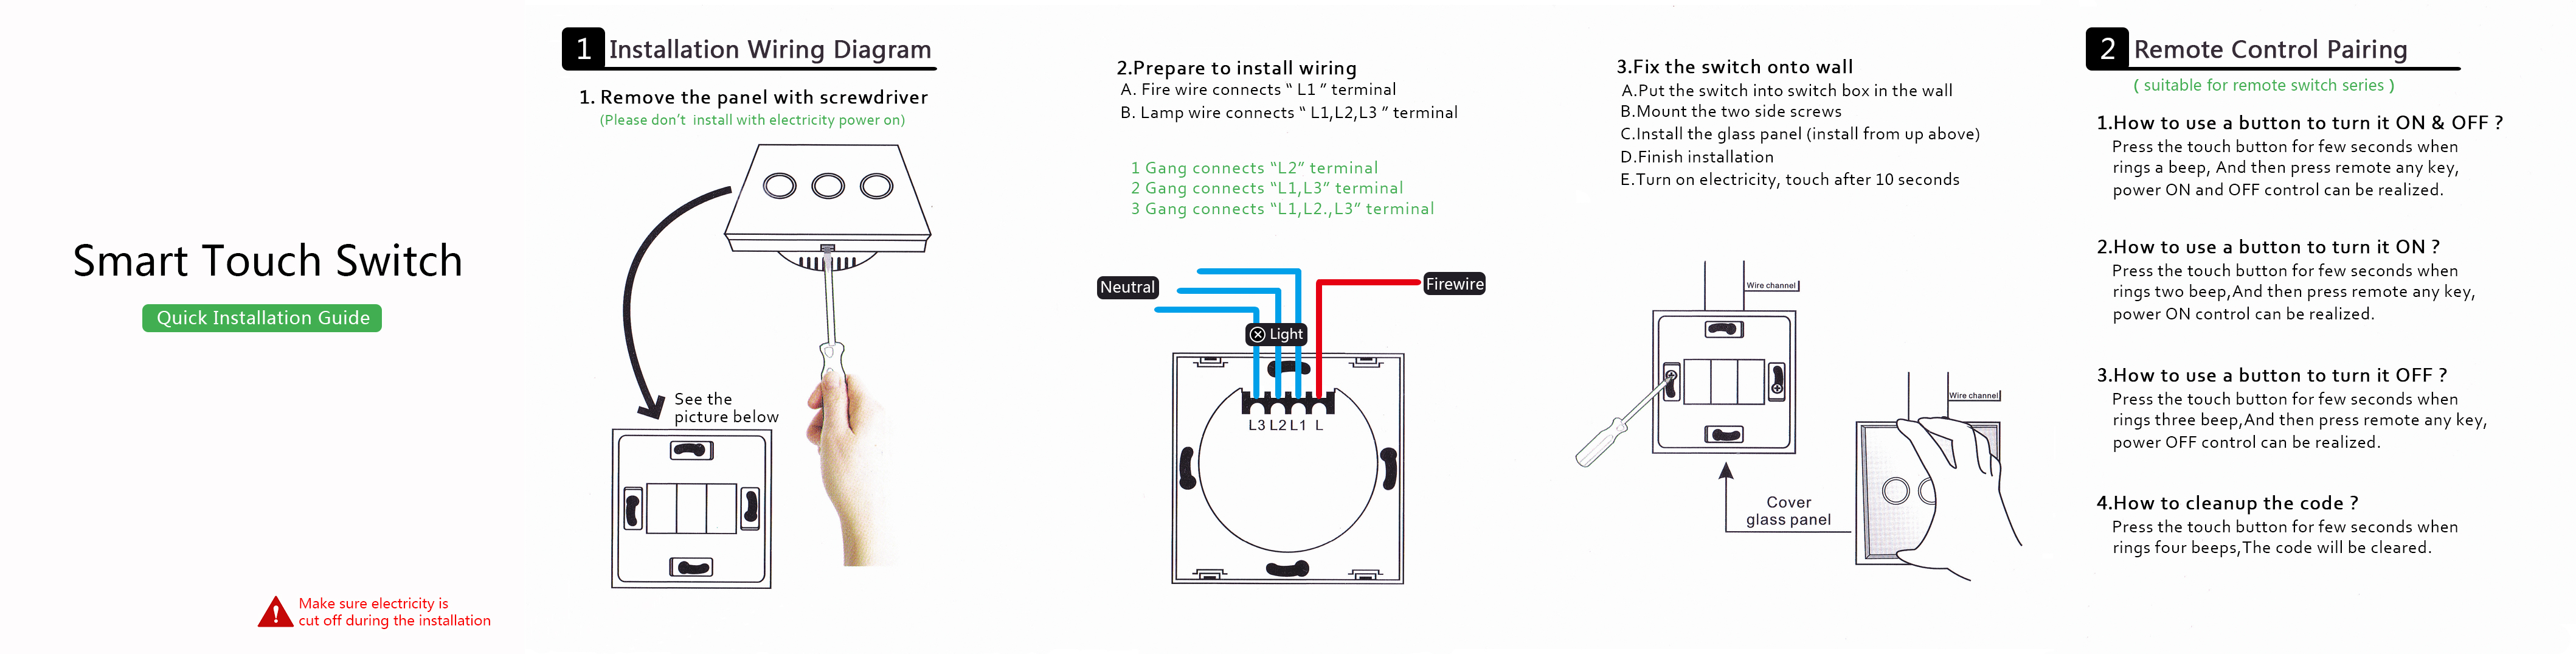 One way touch l switch wiring diagram 28 images jzgreentown dimmer switch wiring diagram l1 l2 efcaviation cheapraybanclubmaster Images